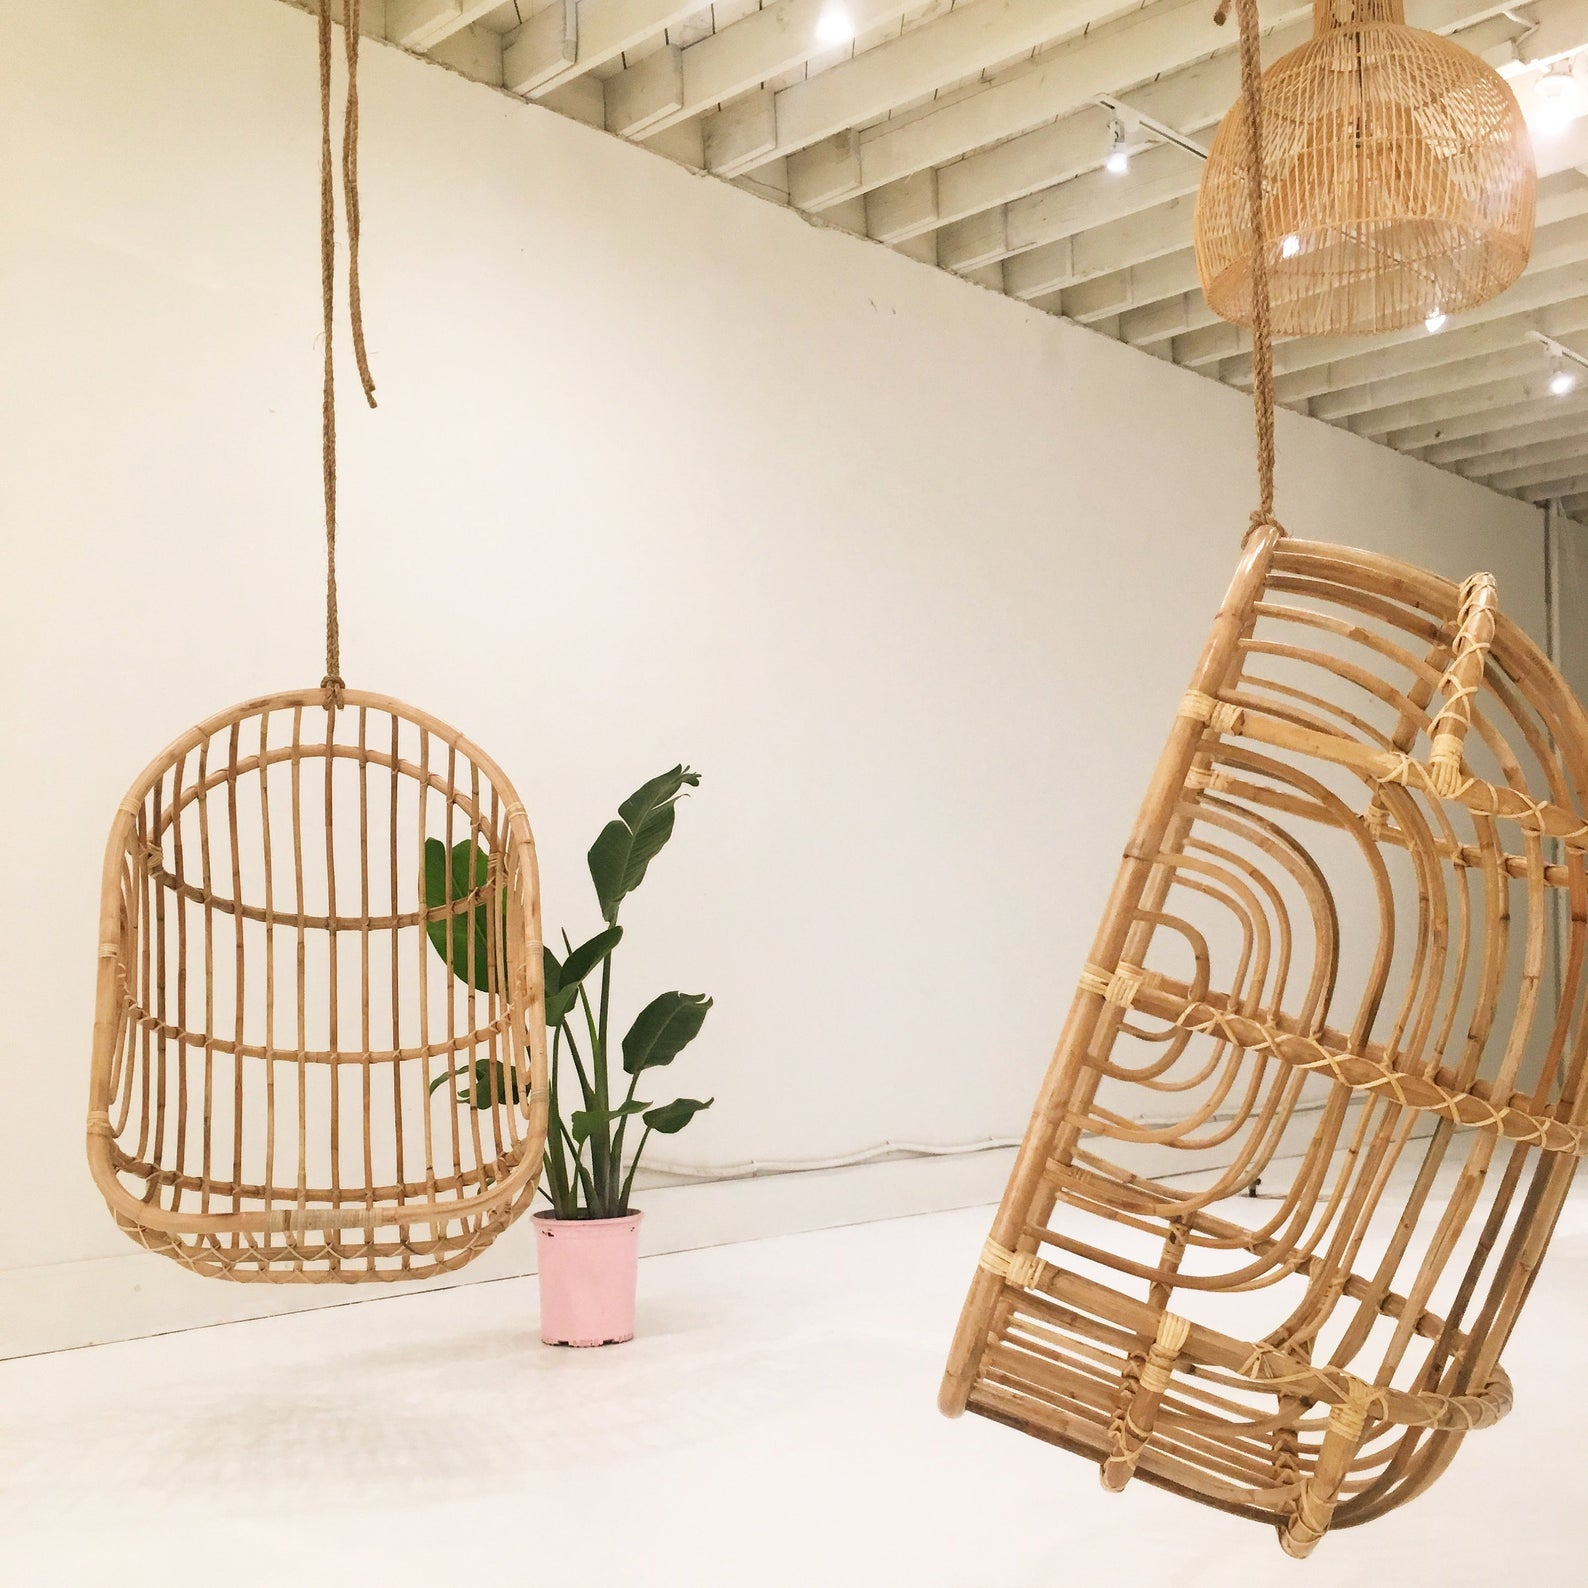 Stylish Boho egg chairs - Image via The Wicked Boheme (Etsy) feat. Nest Rattan Hanging Chair.